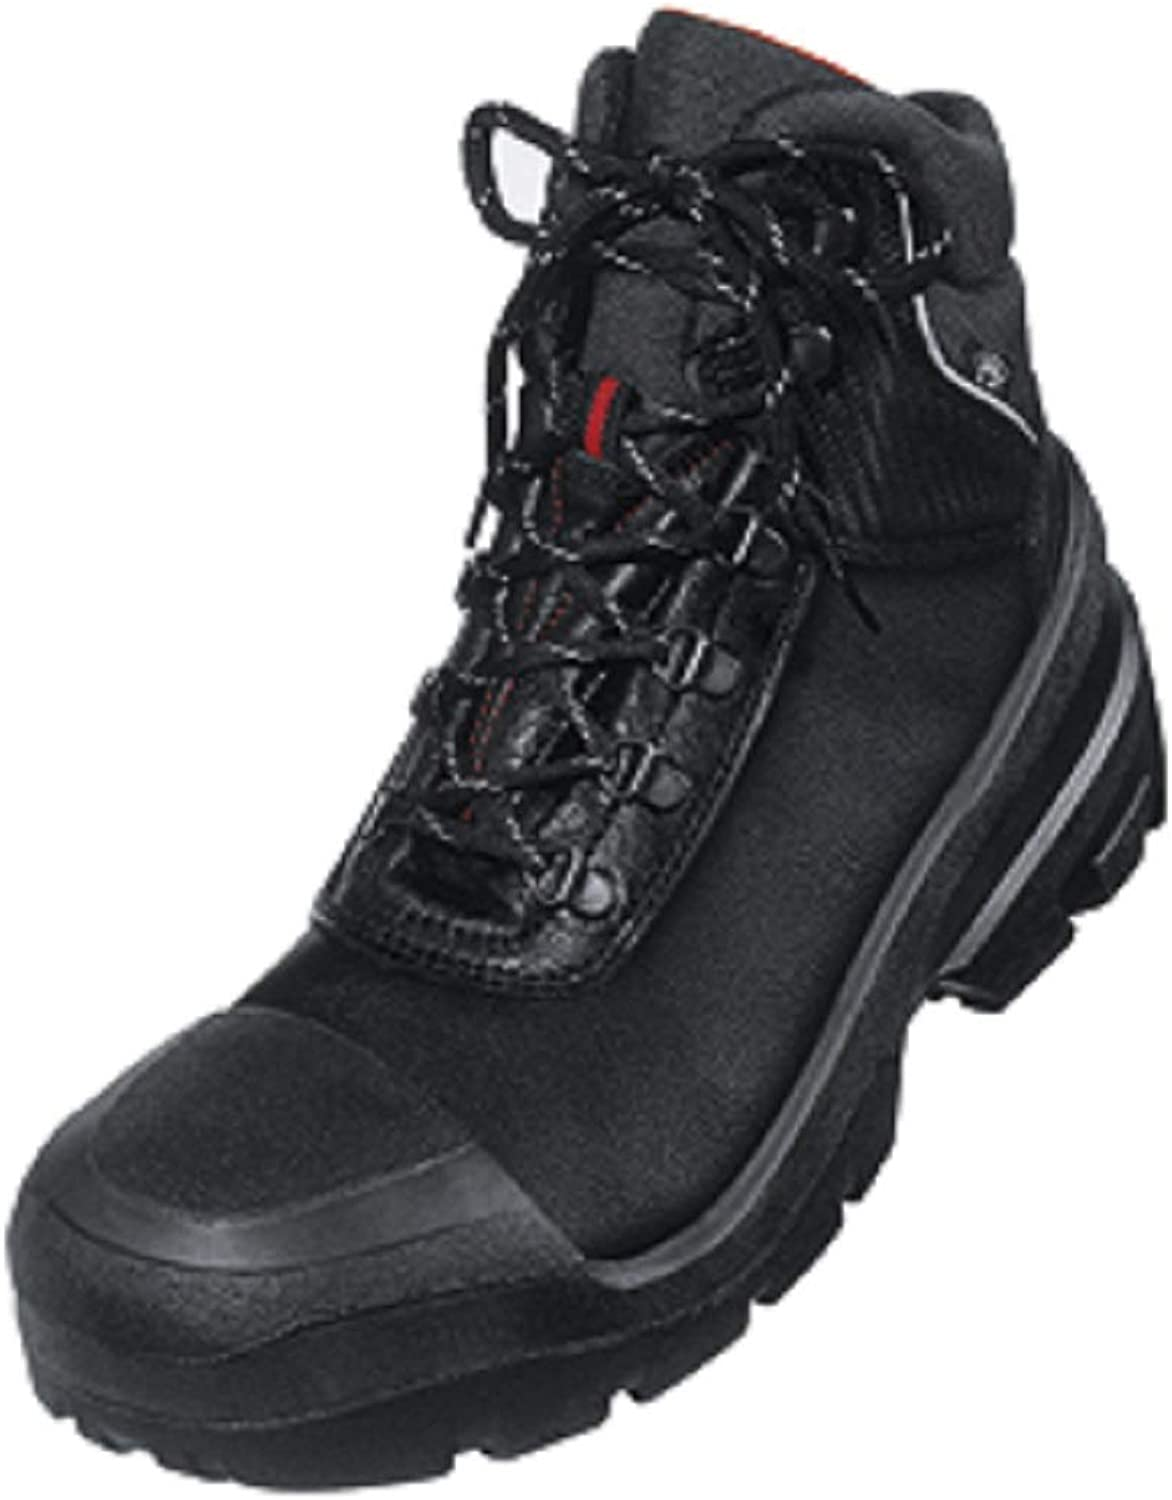 8401 quatro s3 safety boots